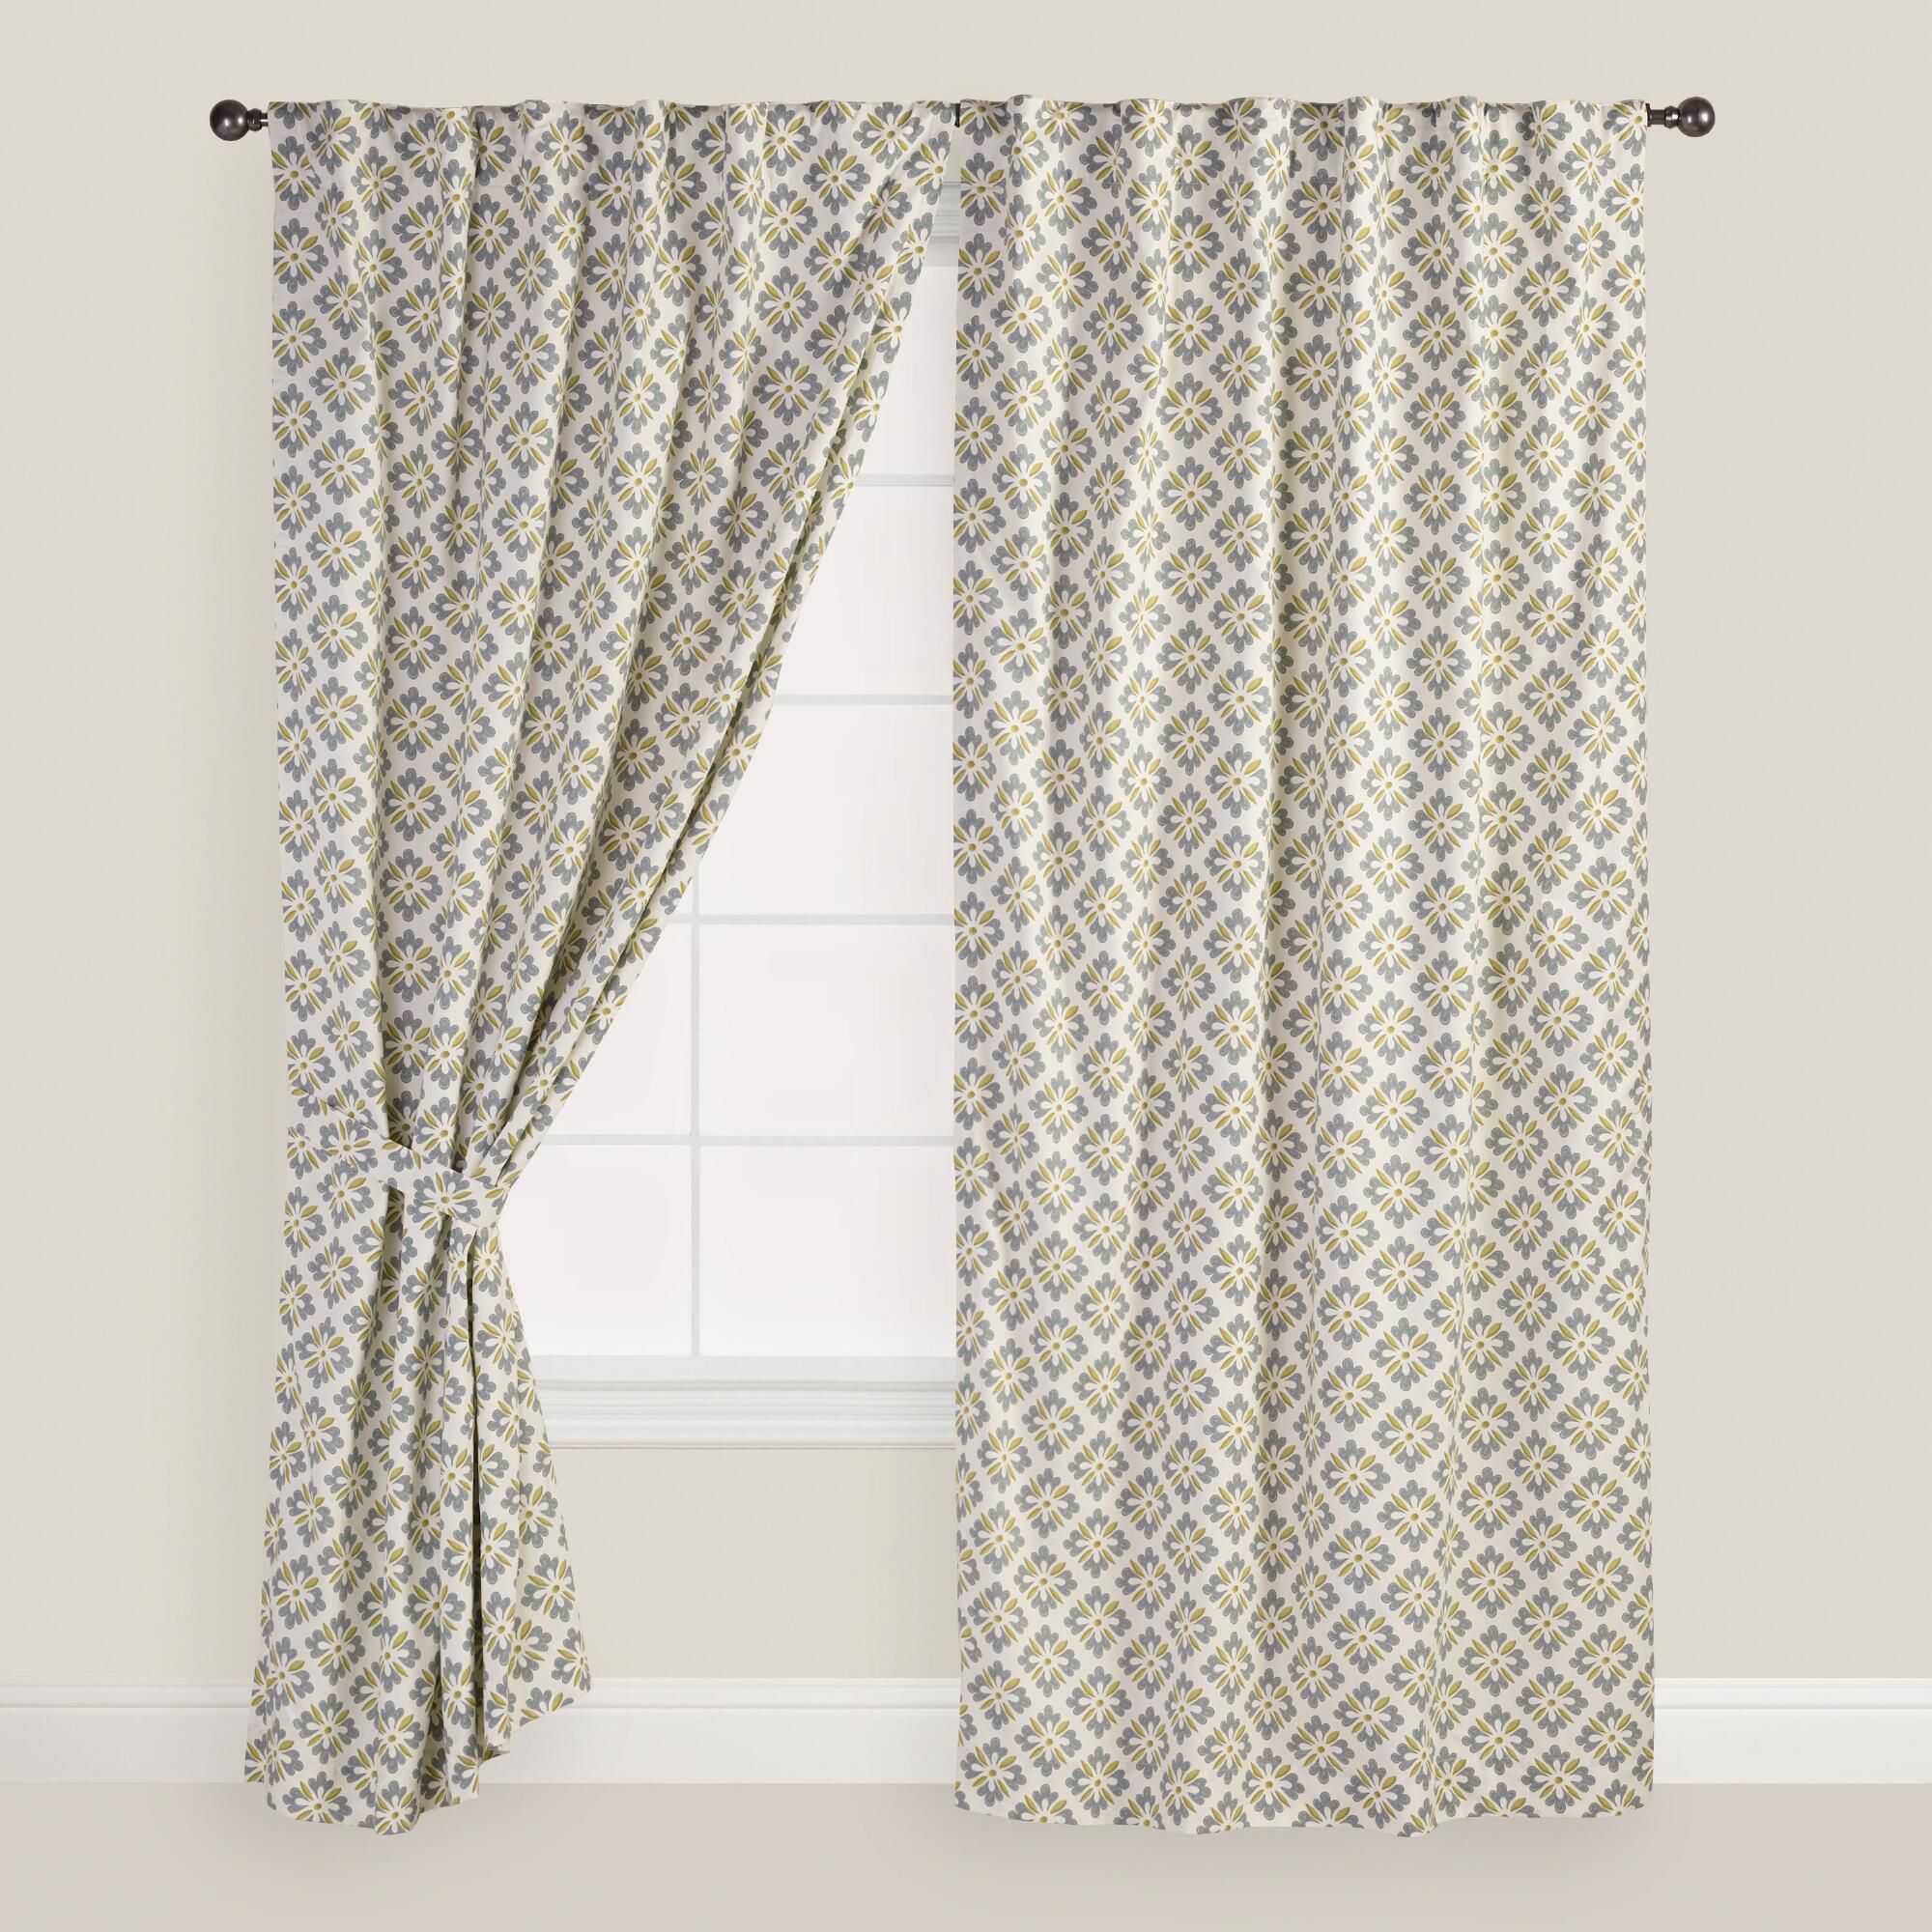 design curtainspink unique size curtain white full and striped contemporary ande pink short curtains of green fascinating walmart stripe image shower walmartpink